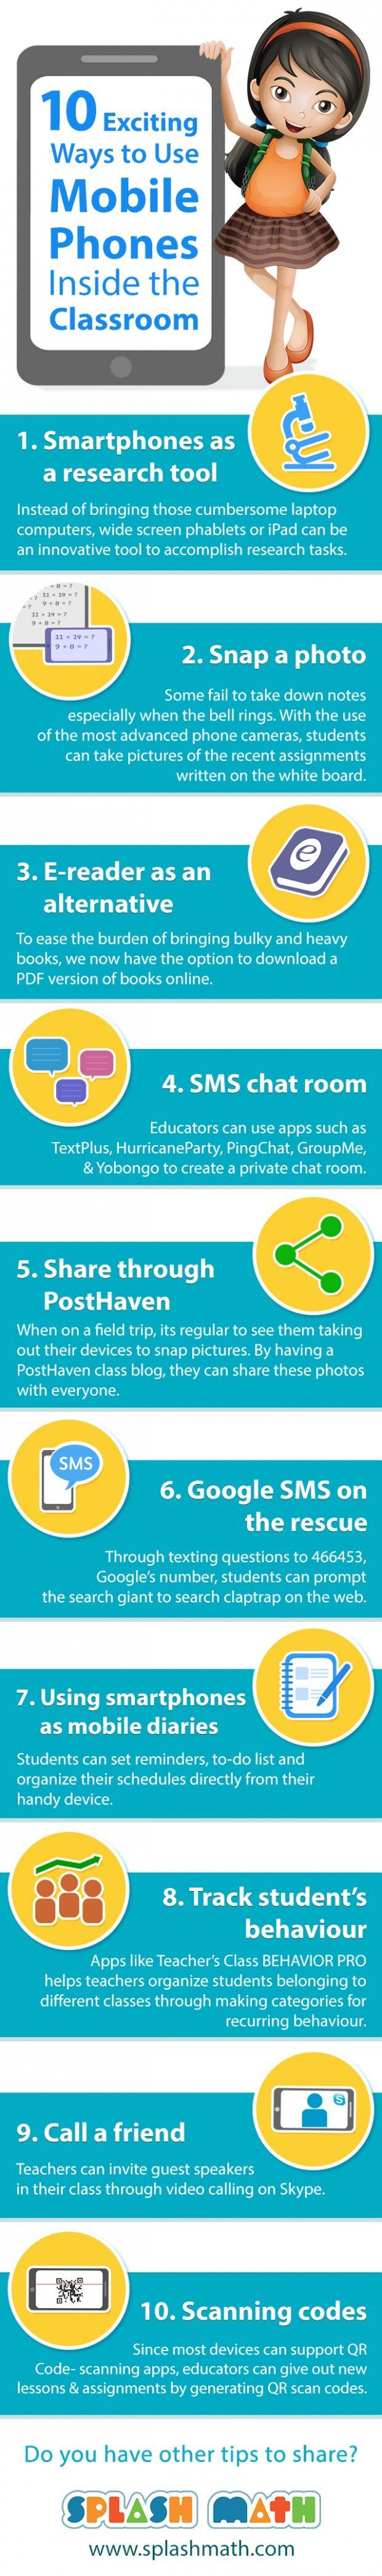 10 Good Ways to Integrate Mobile Phones in Class